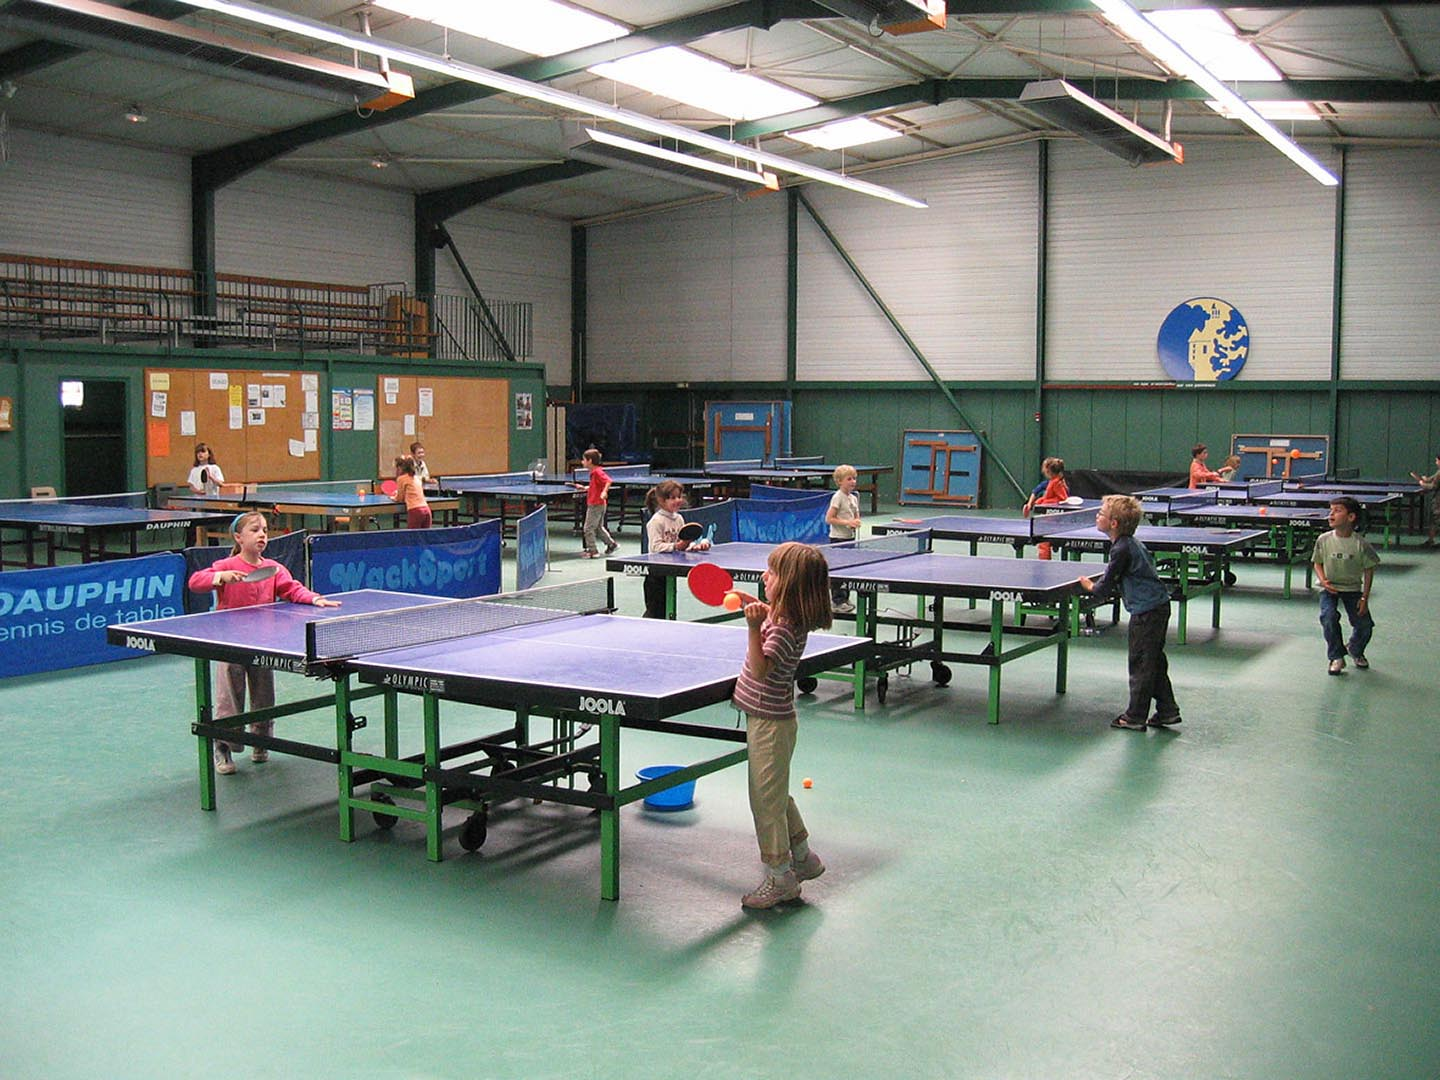 Tennis de table - Tennis de table classement individuel ...